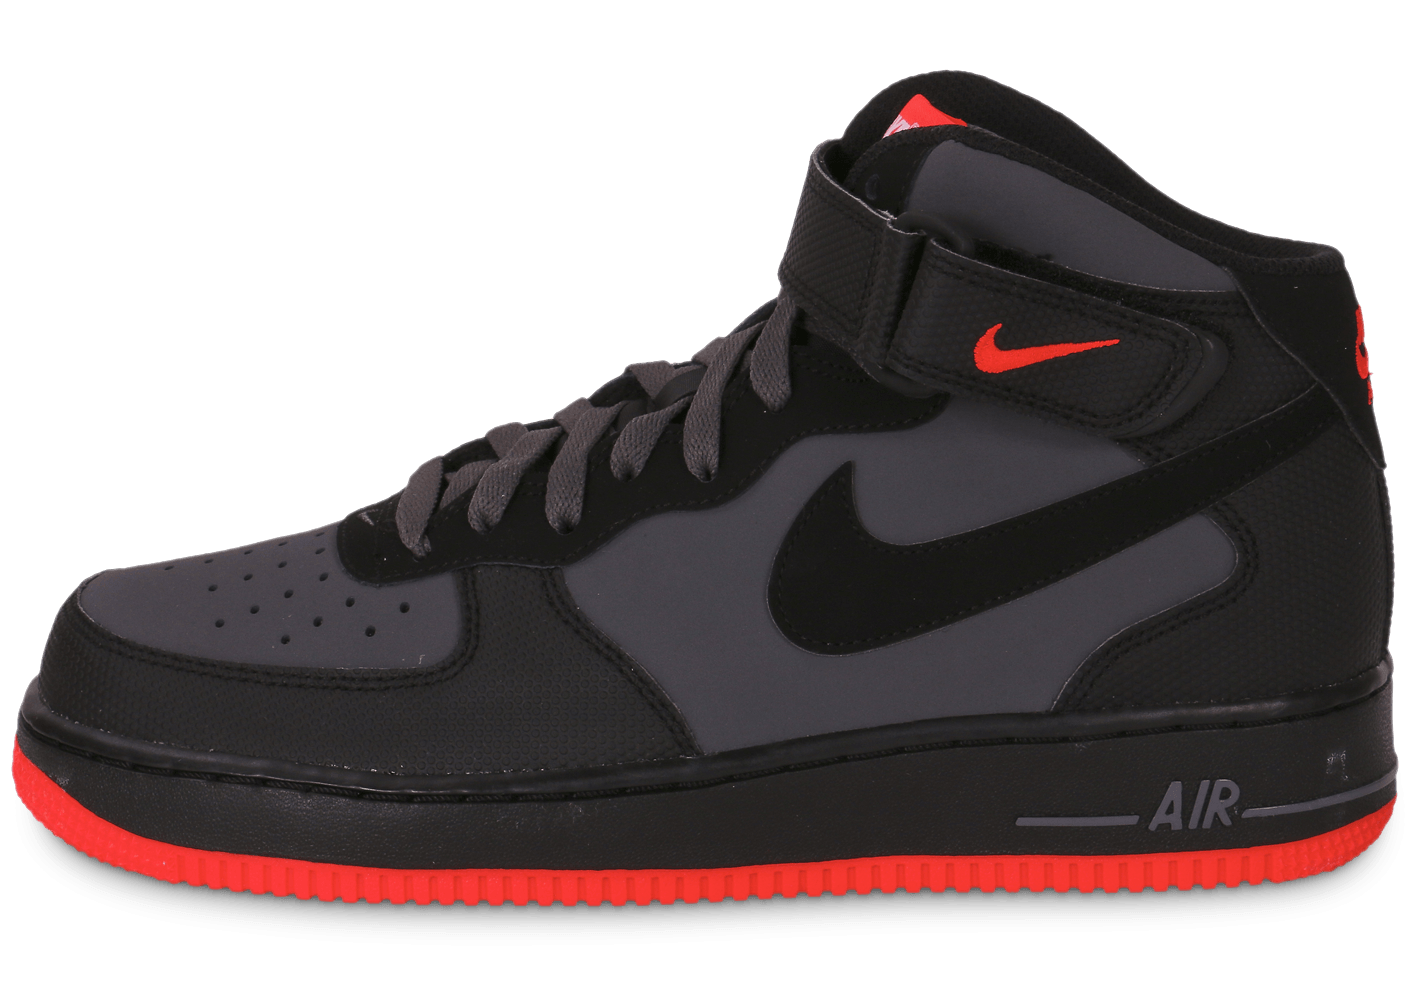 nike air force 1 mid 07 grise chaussures baskets homme chausport. Black Bedroom Furniture Sets. Home Design Ideas